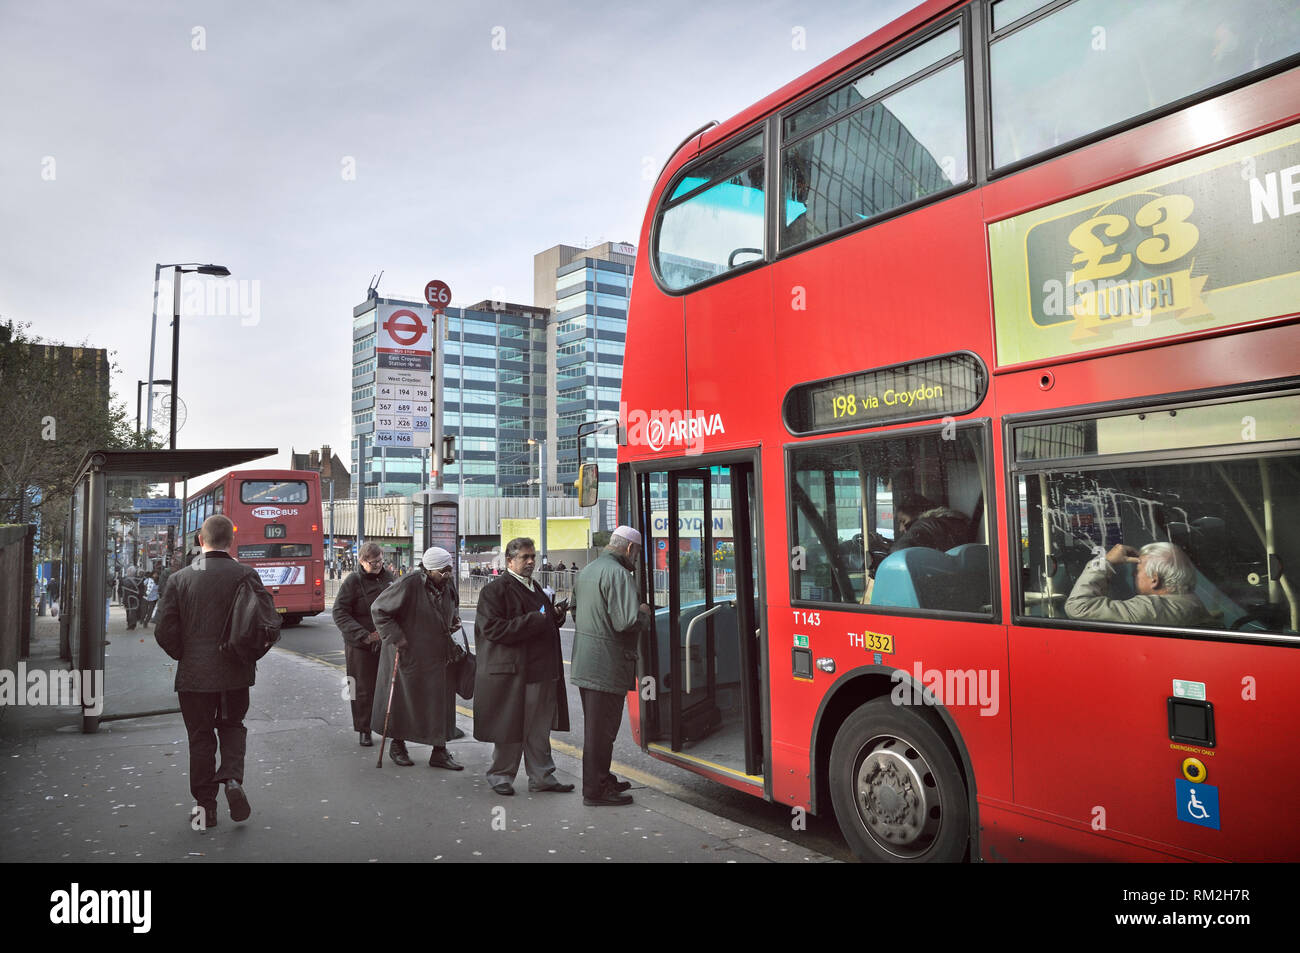 Senior people waiting to board a bus in Croydon, South London, England, UK - Stock Image